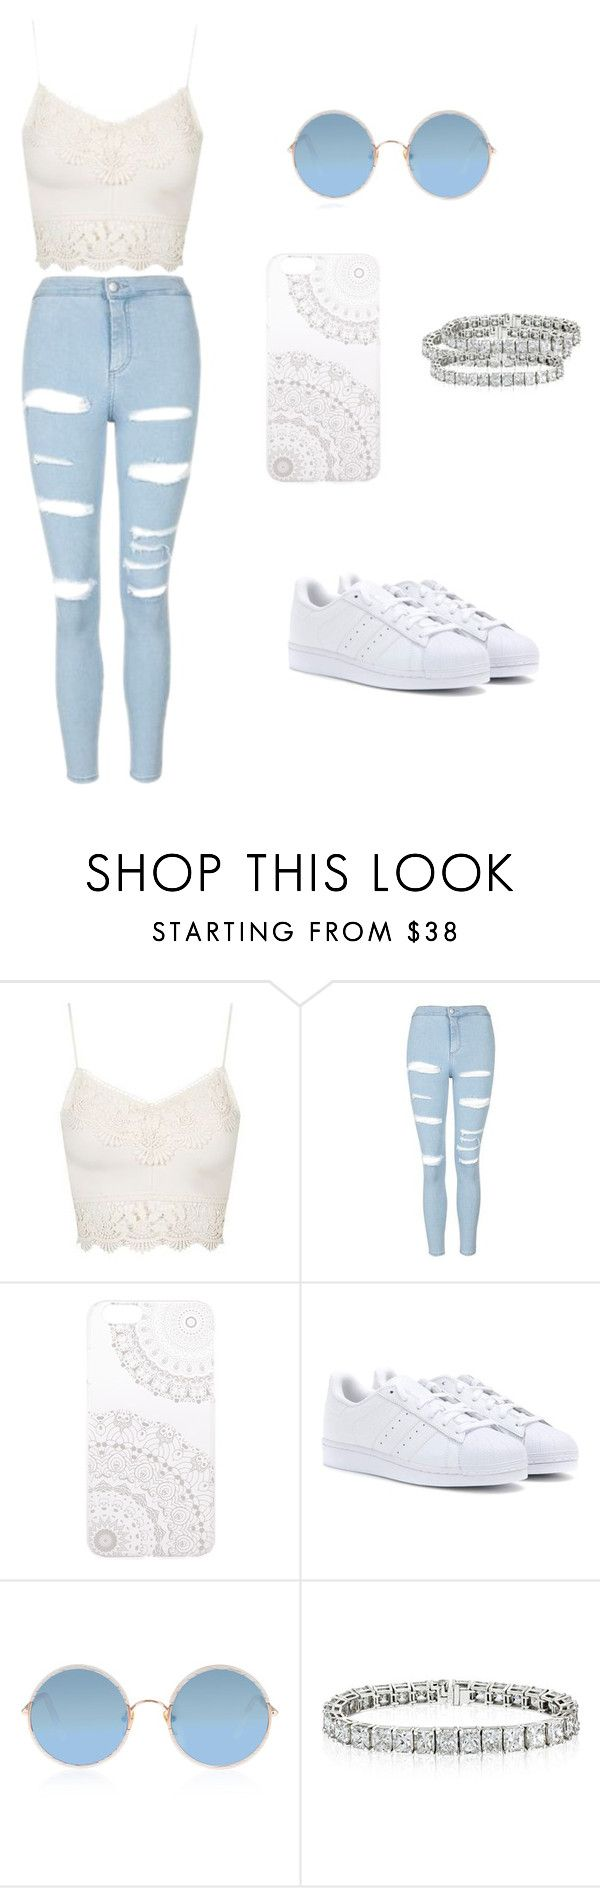 """Sem título #12"" by nicmd ❤ liked on Polyvore featuring Topshop, Monika Strigel, adidas and Sunday Somewhere"